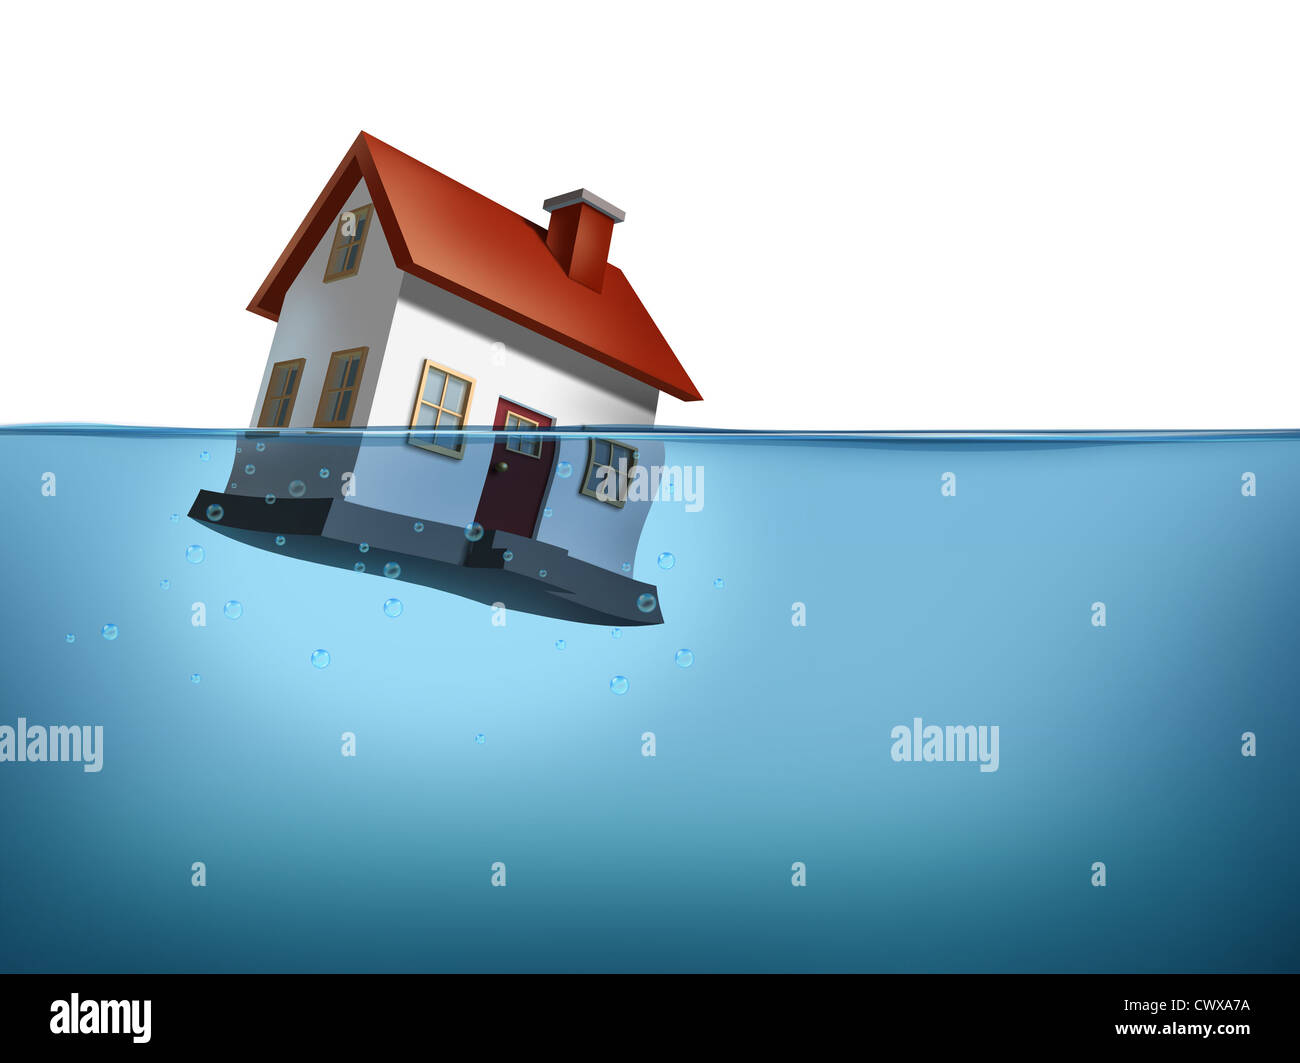 Sinking home and housing crisis with a house in the water on a white background showing the real estate housing - Stock Image